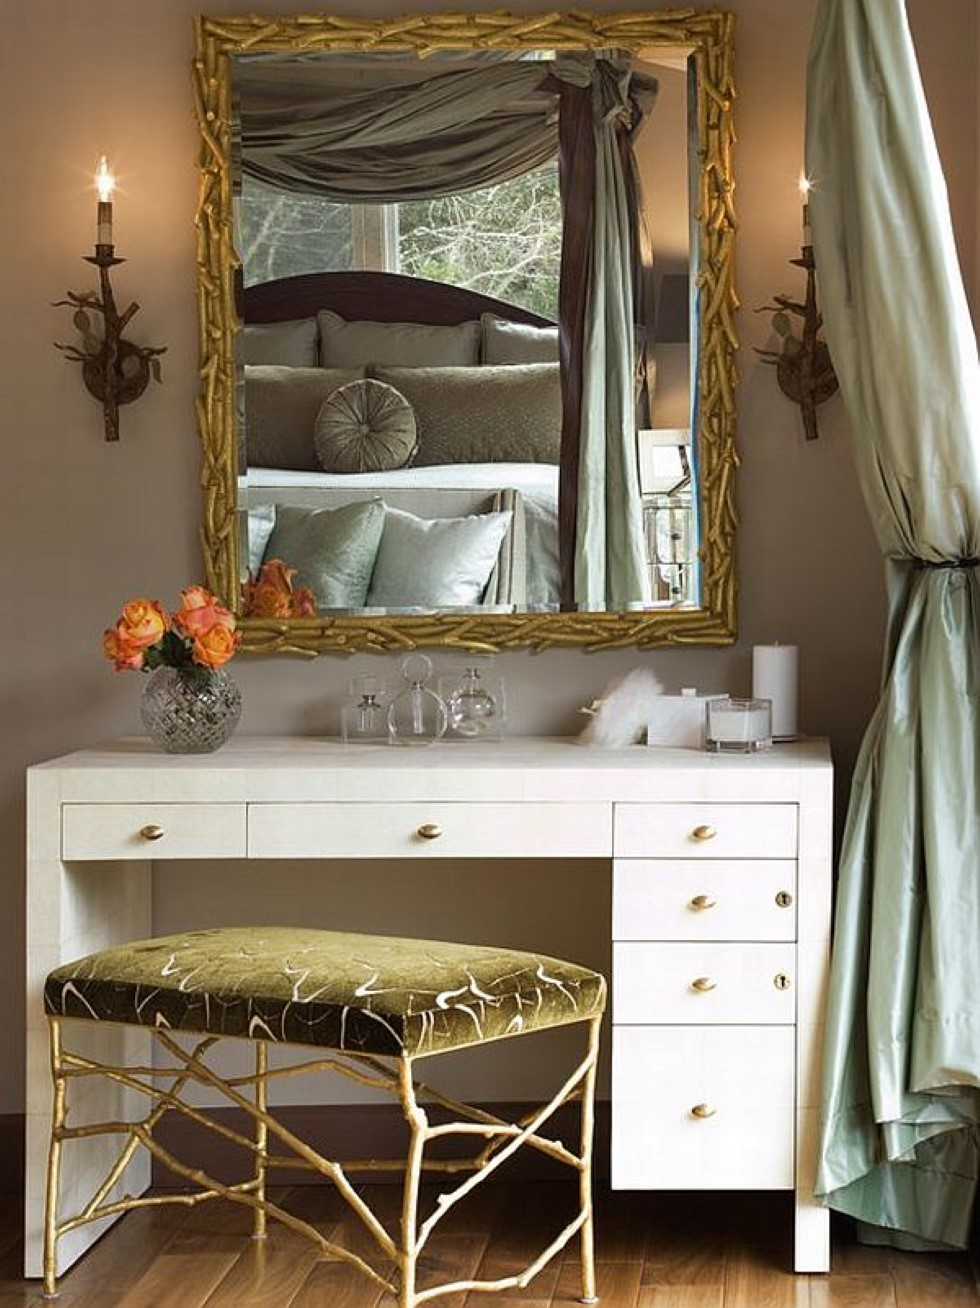 Modern dressing table with mirror - Unique Minimalist And Bohemian Combination Of Dressing Table With Root Framed Wall Mirror And Bench In